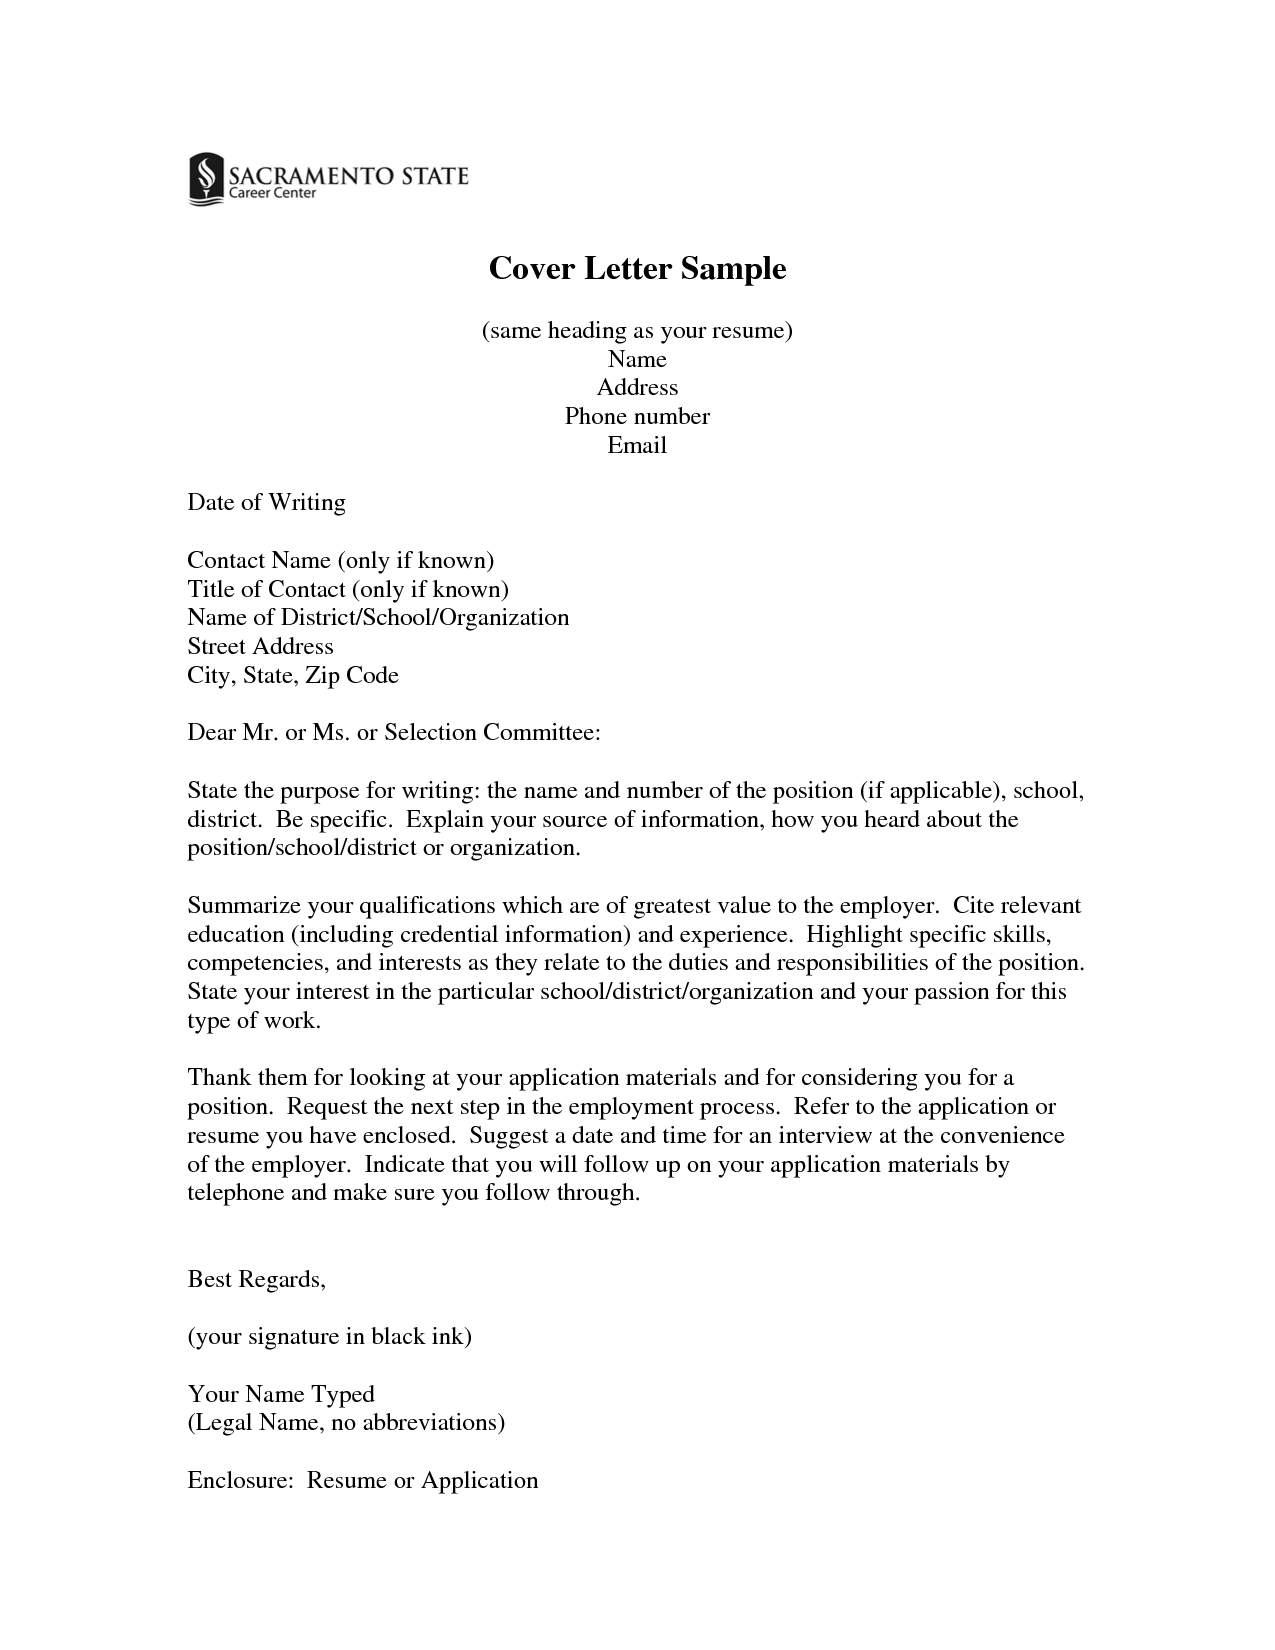 Same cover letters for resume cover letter sample same heading resume name title examples free templates for resumes and sample names cover letter best free home design idea inspiration madrichimfo Image collections